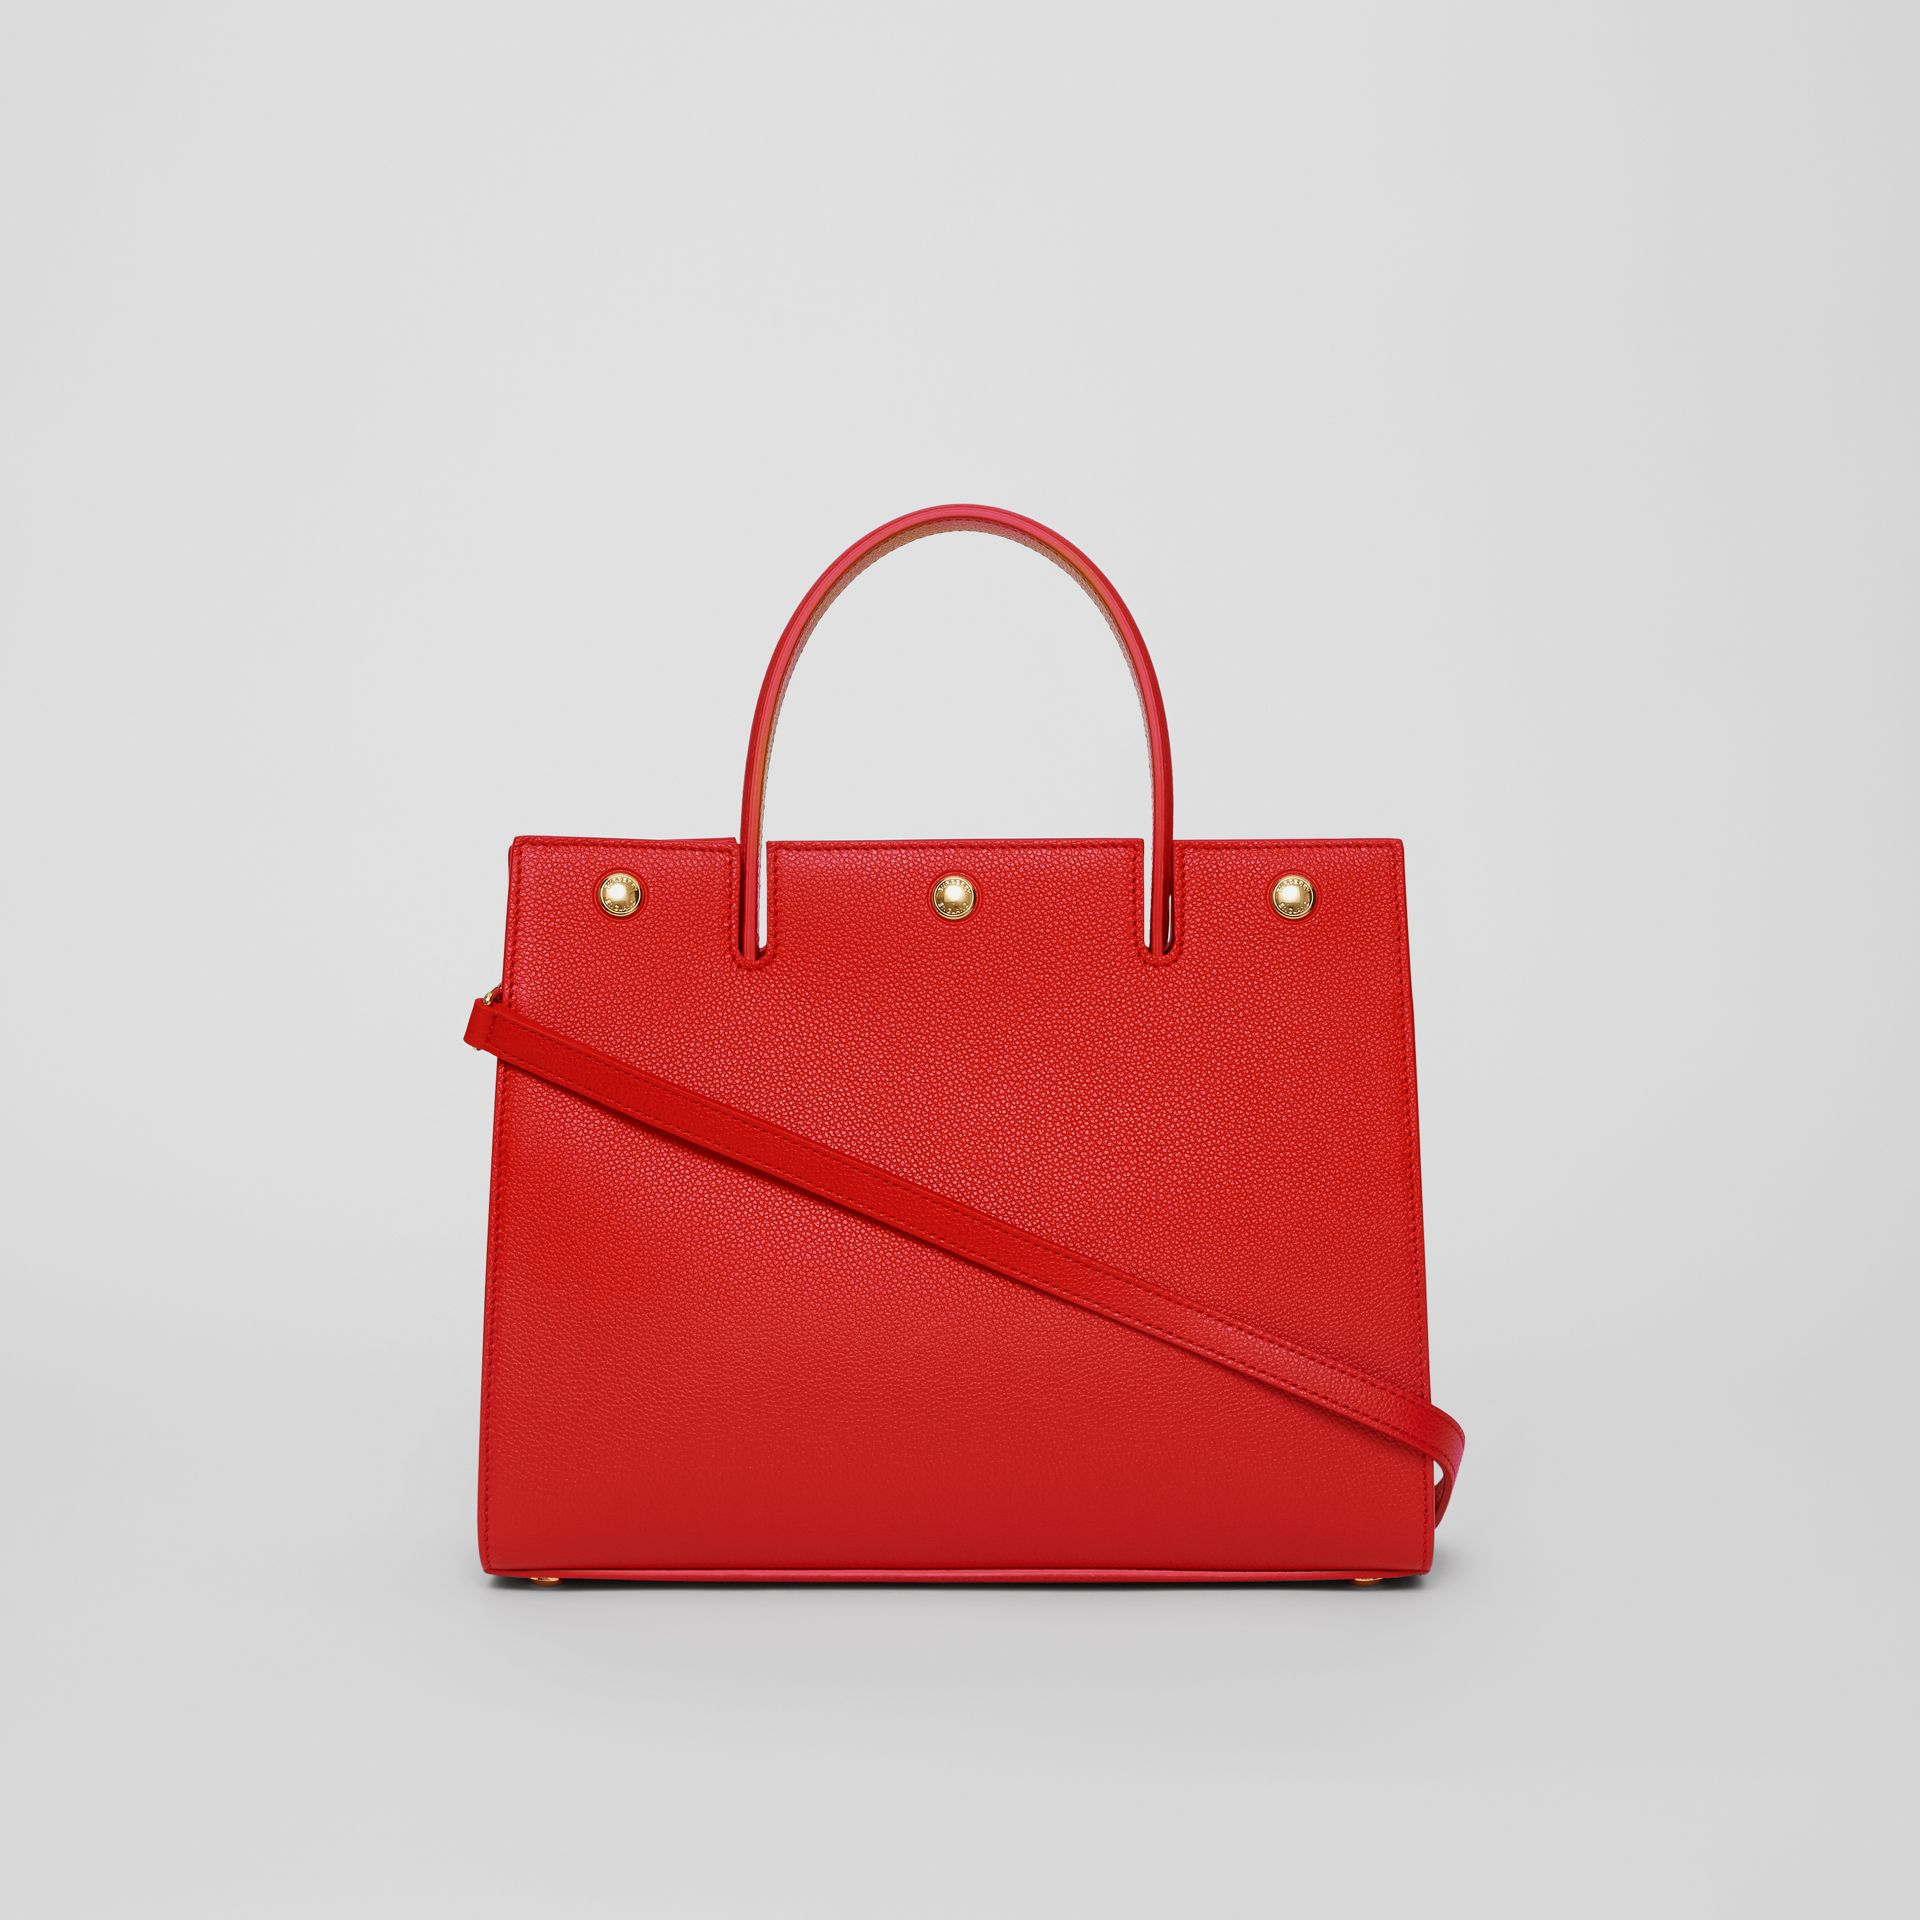 Small Leather Title Bag in Bright Red - Women | Burberry - gallery image 7